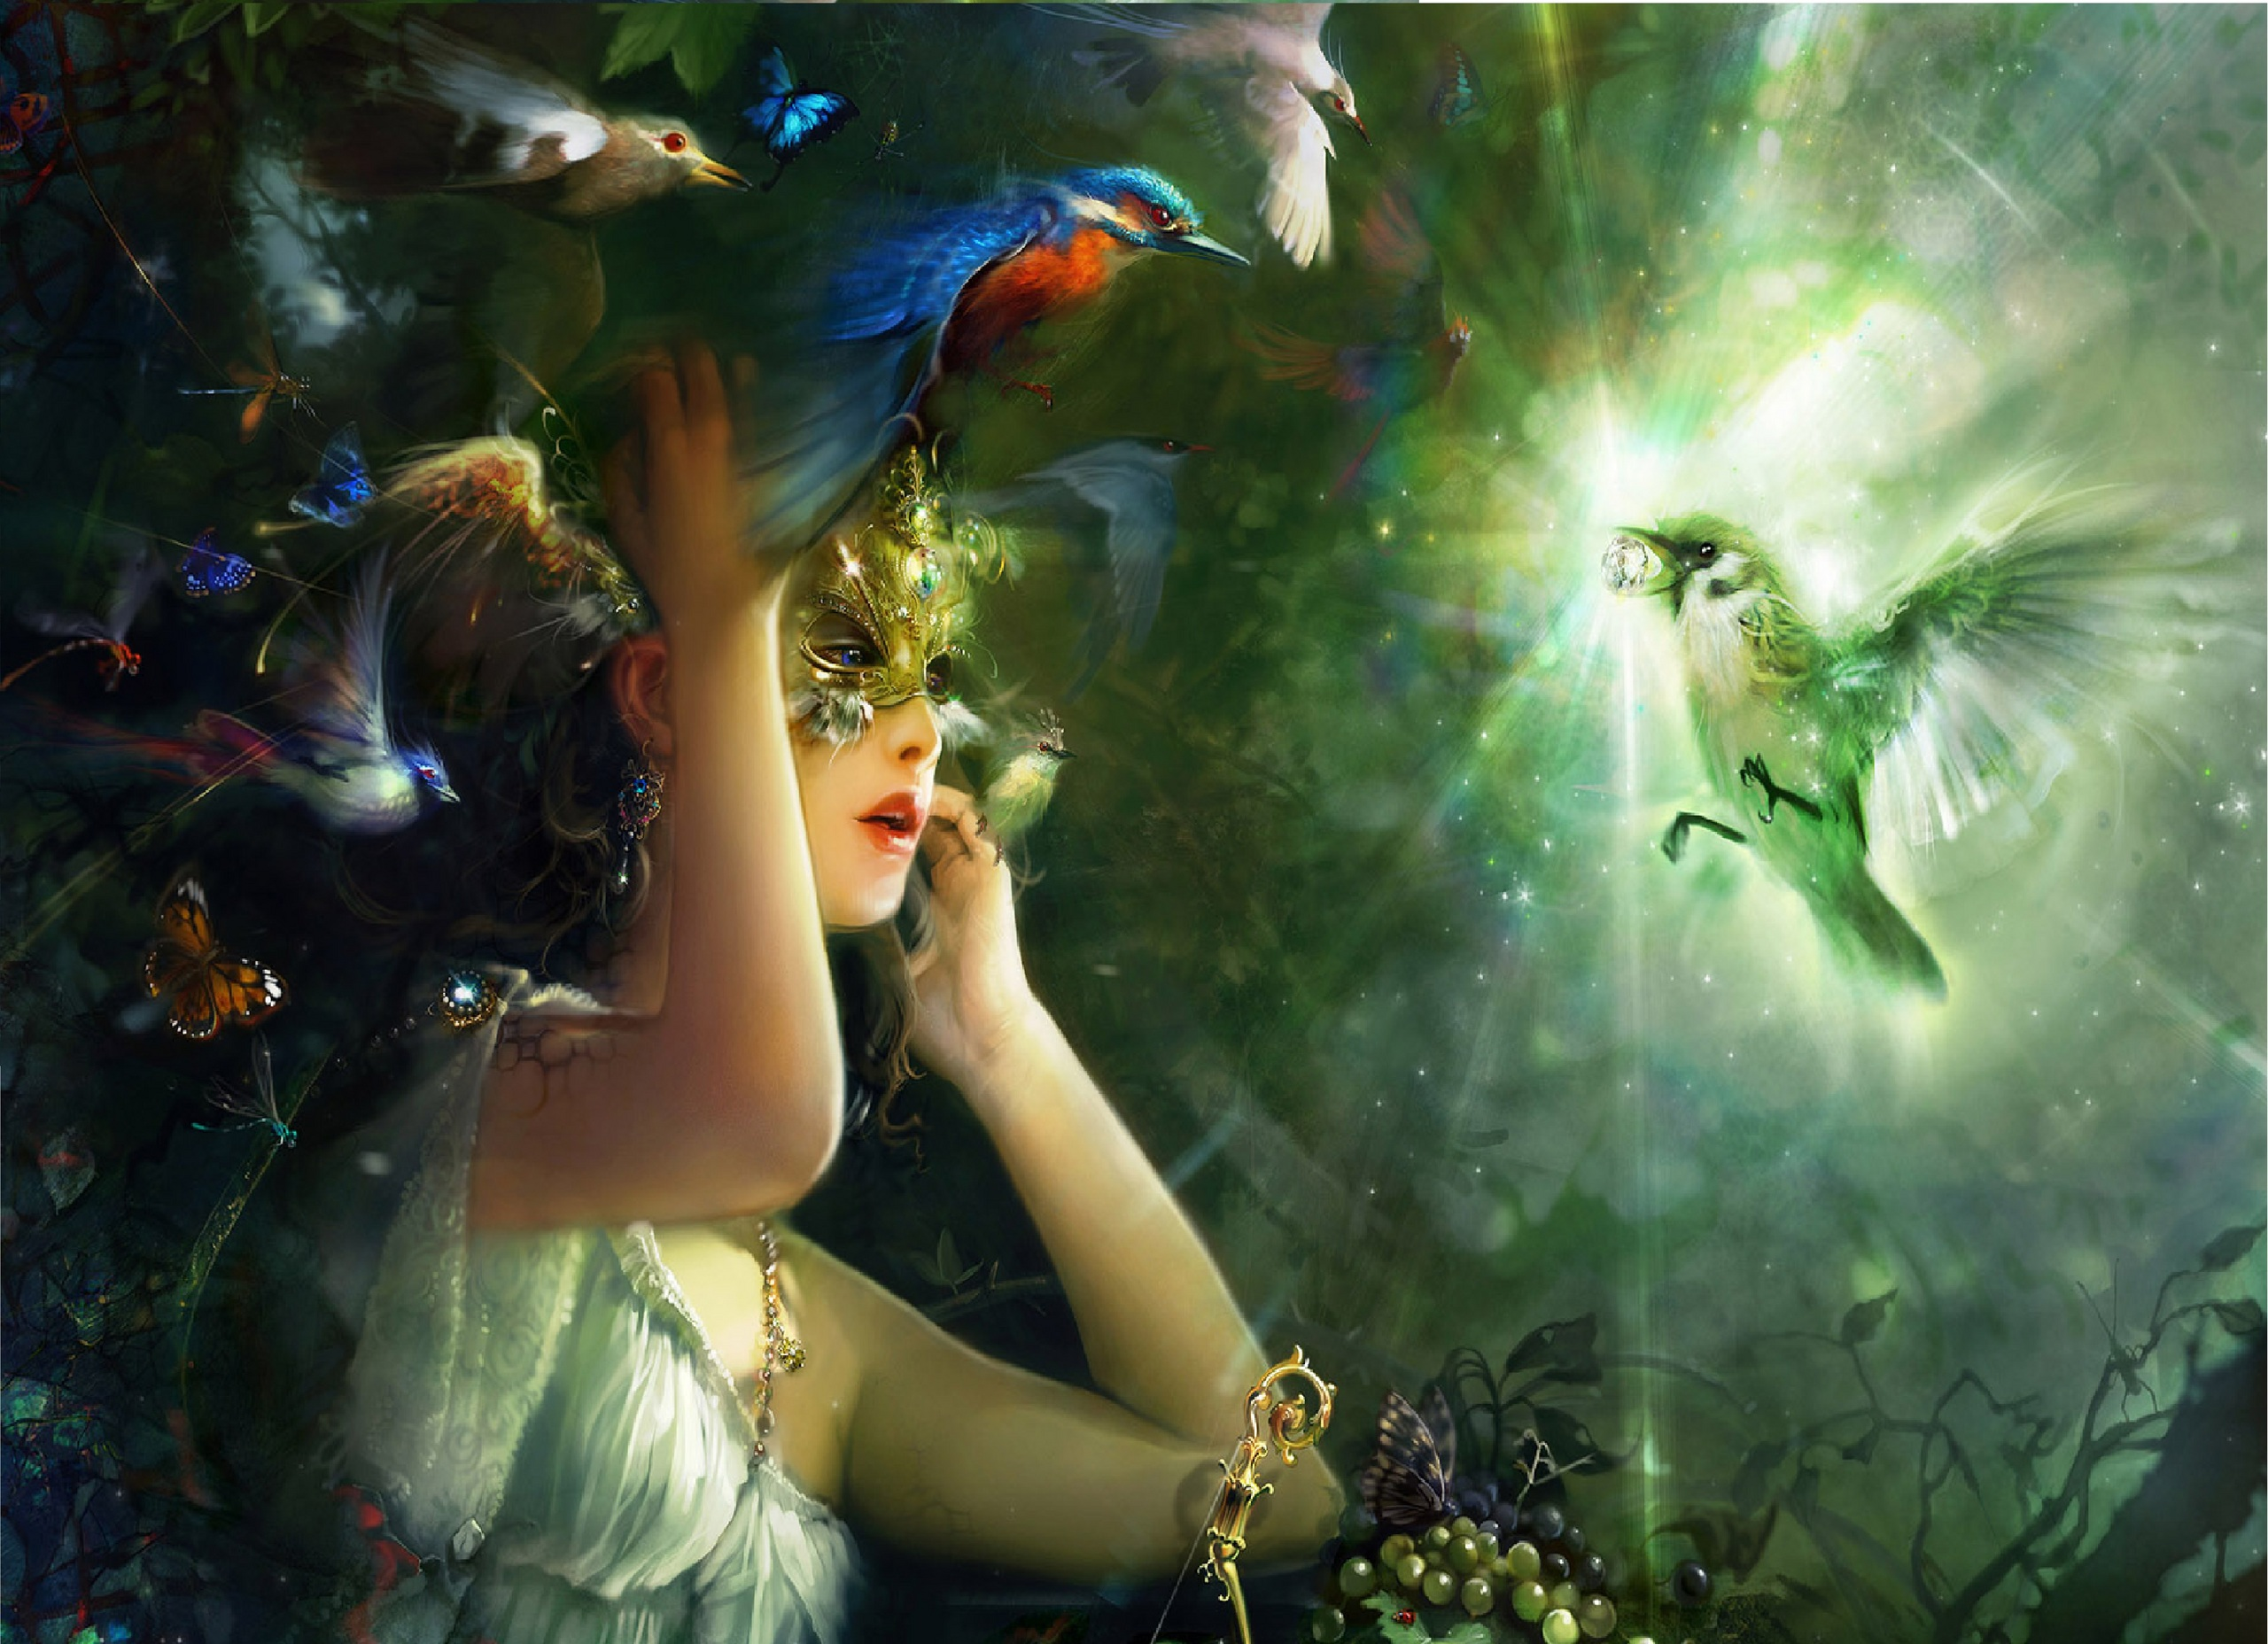 fairies movies images - photo #28